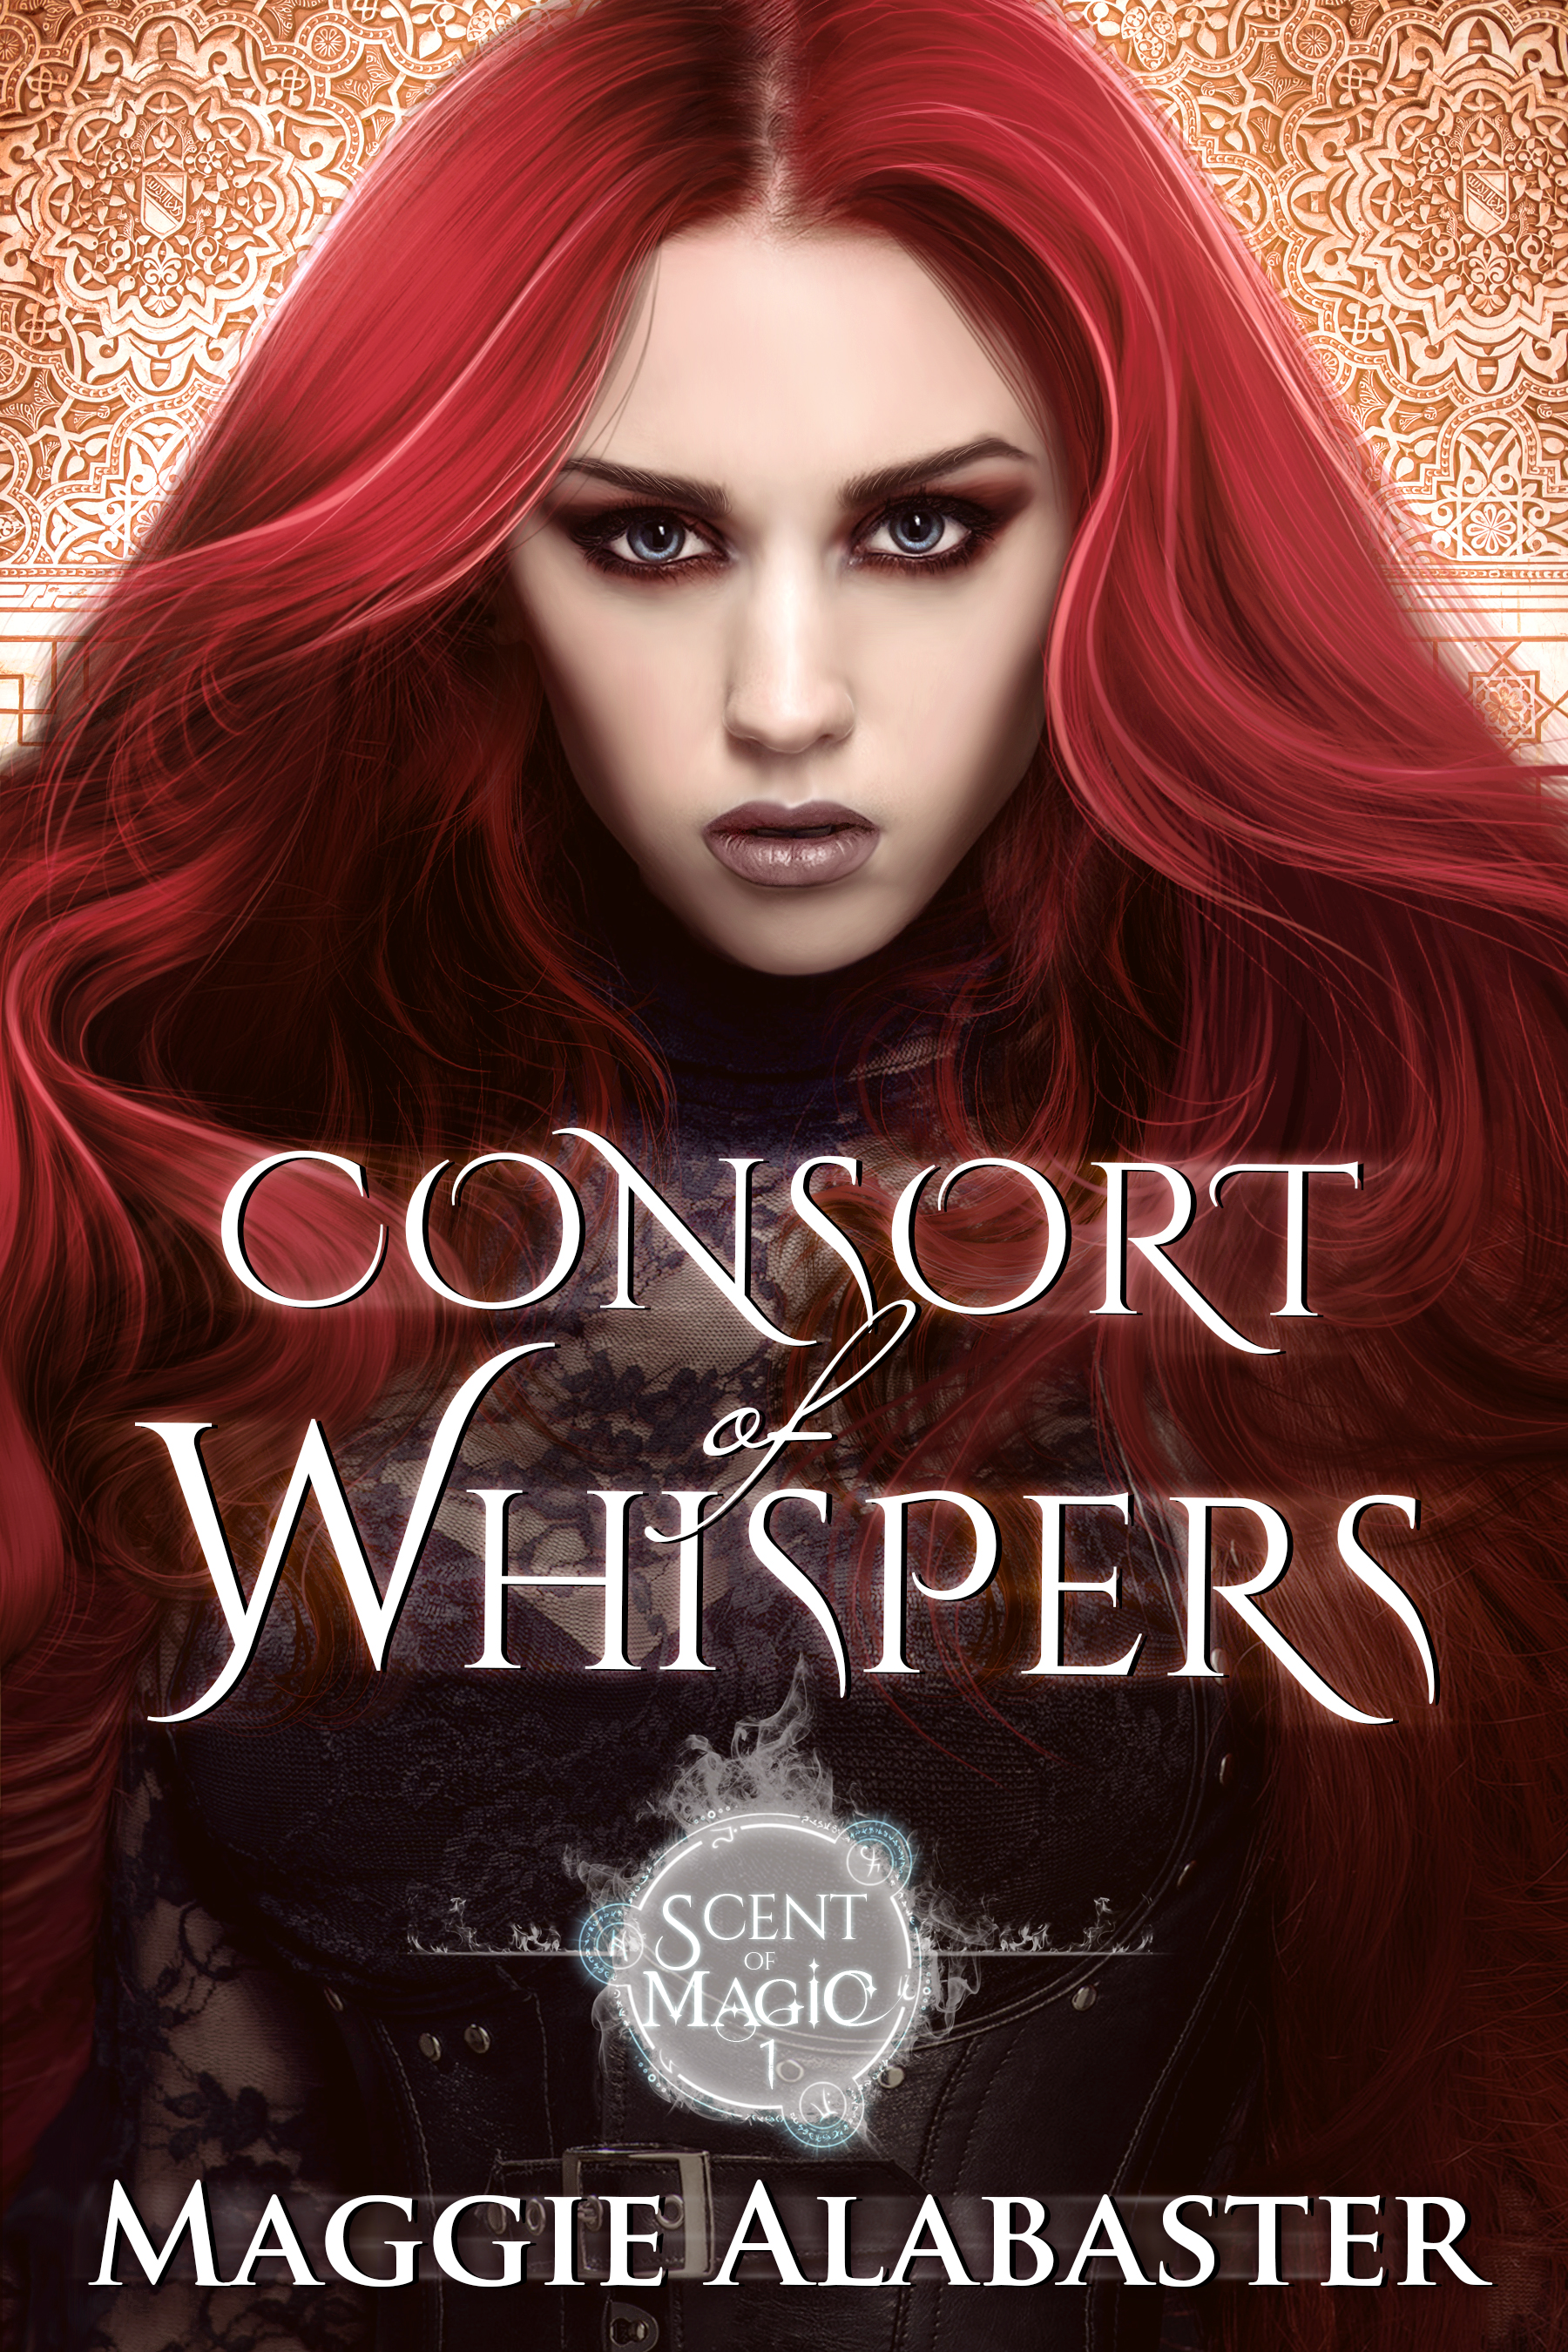 Consort of Whispers